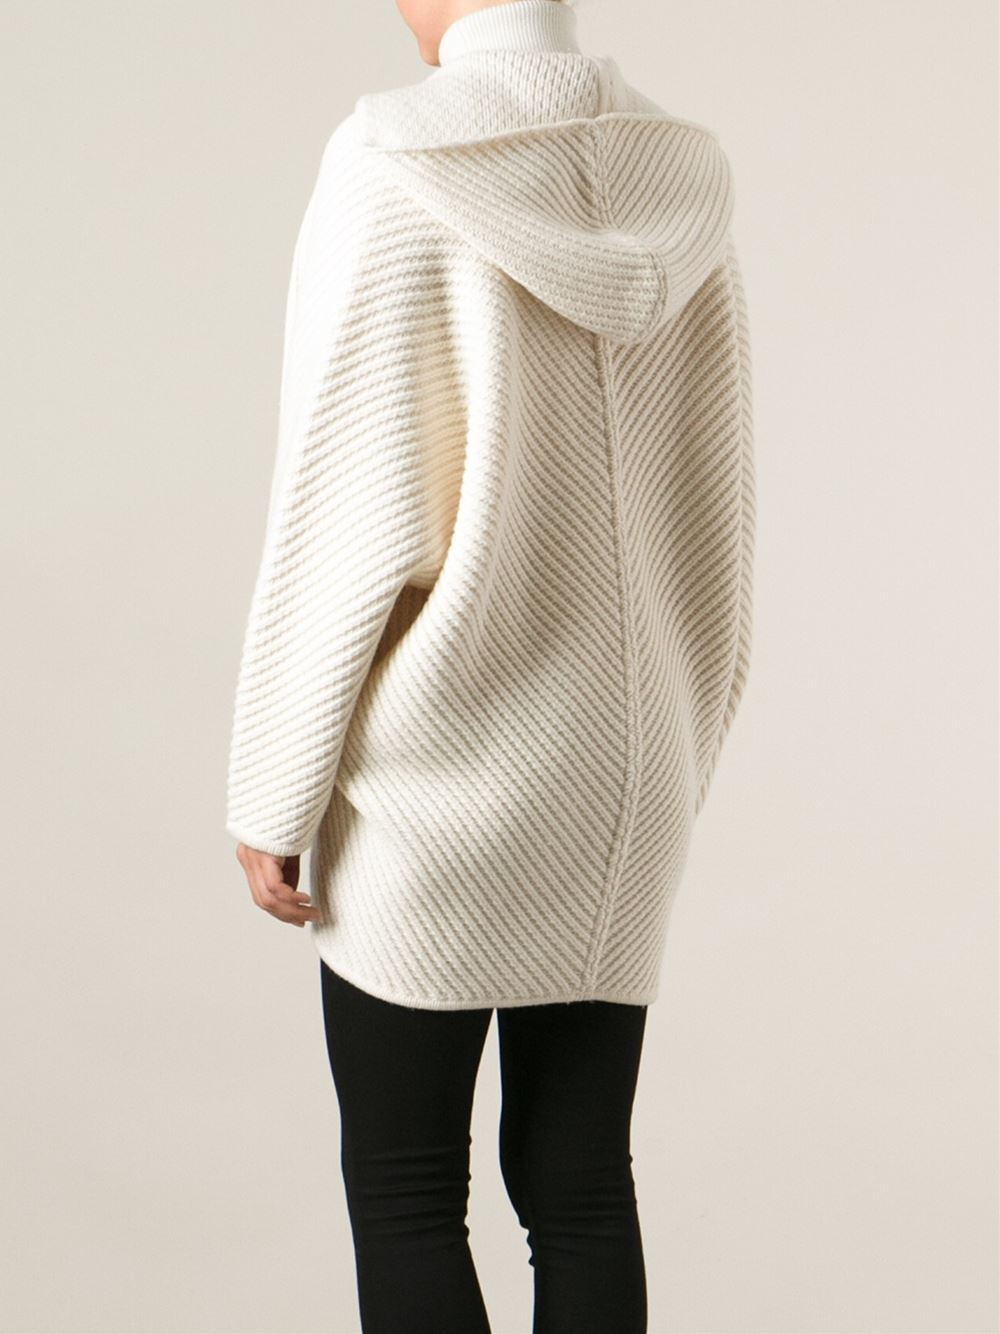 Barbara bui Oversized Hooded Cardigan in White | Lyst